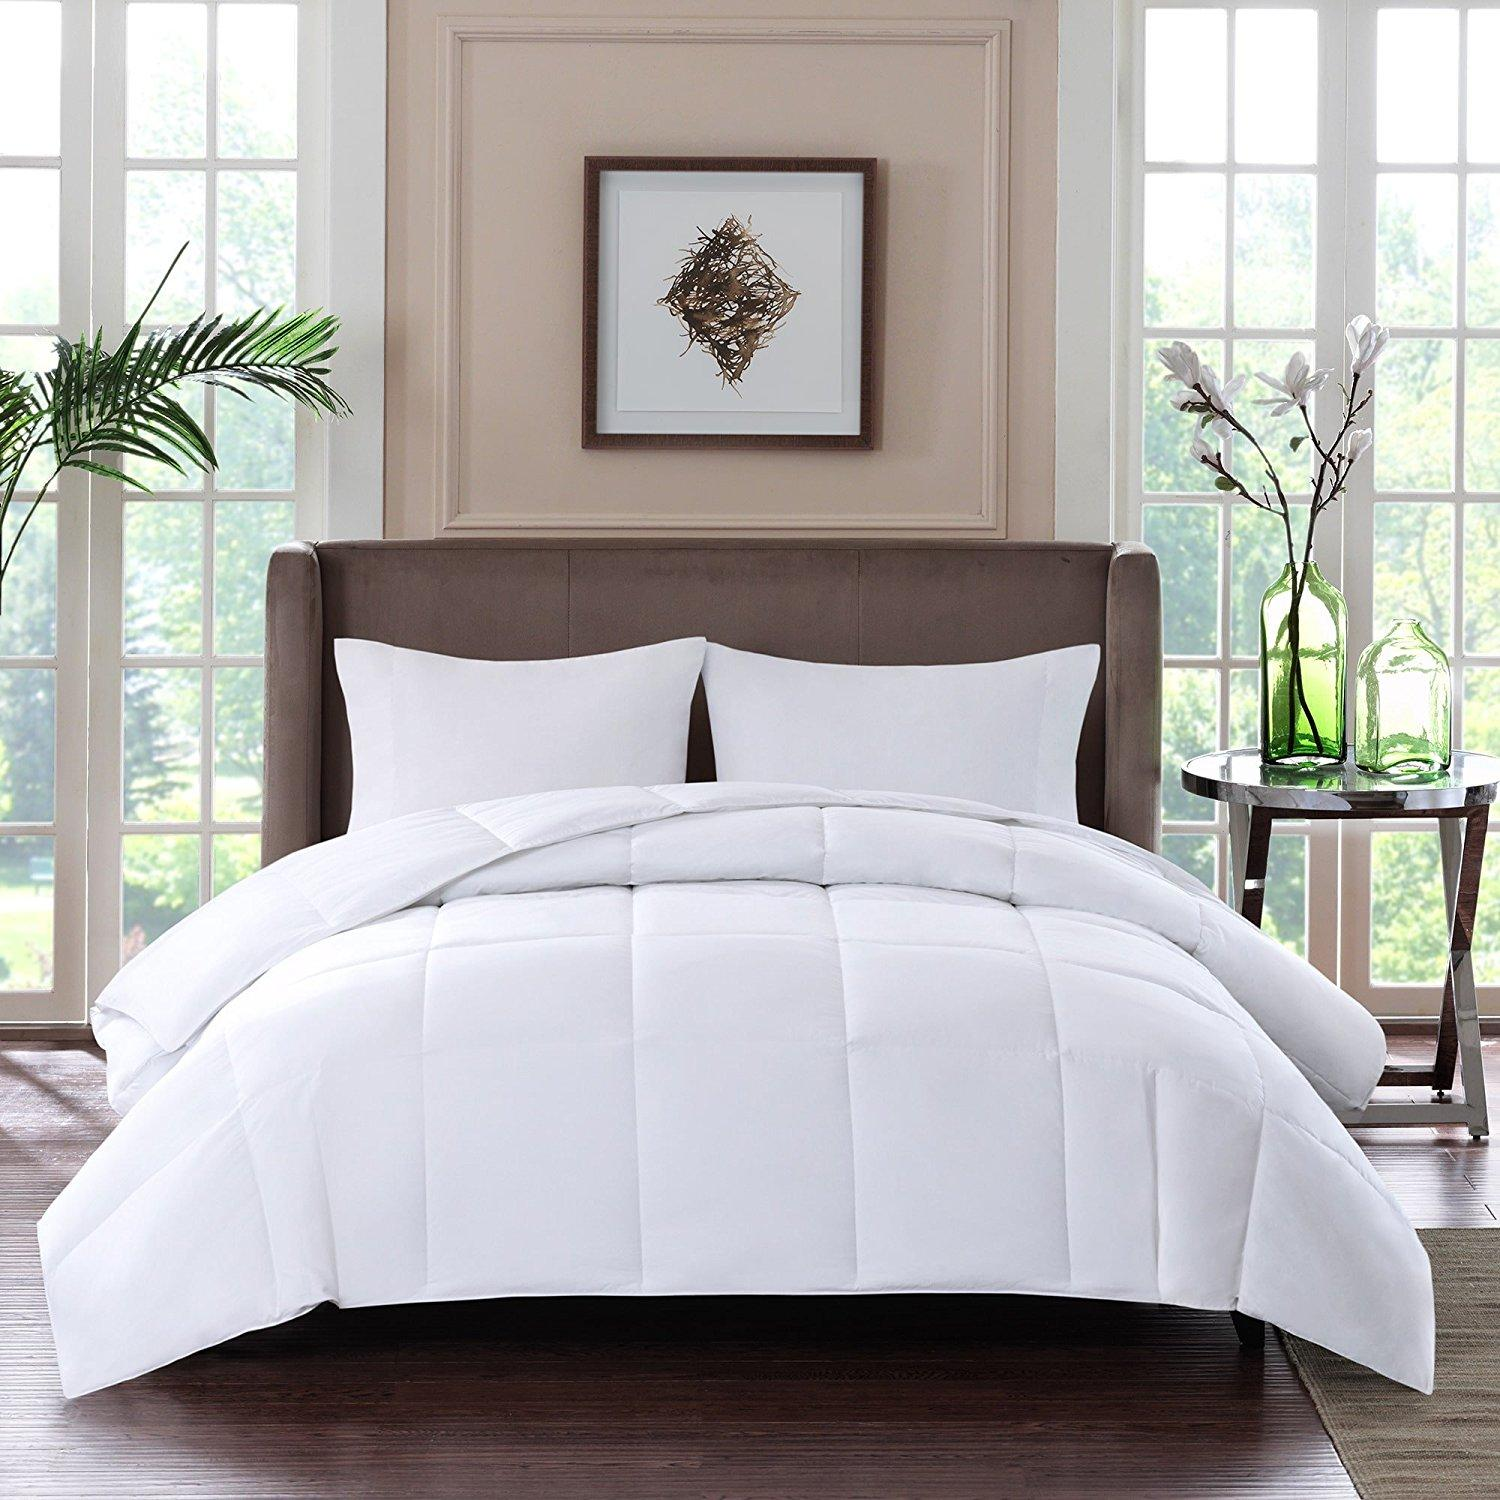 sale super store top for goose down striped topsleepy contemporary size best microfiber alternative full duvet of comforters luxury king and white comforter filling covers target grey bedding red luxurious the bedroom green light colored plain review company duvets luxe all cover